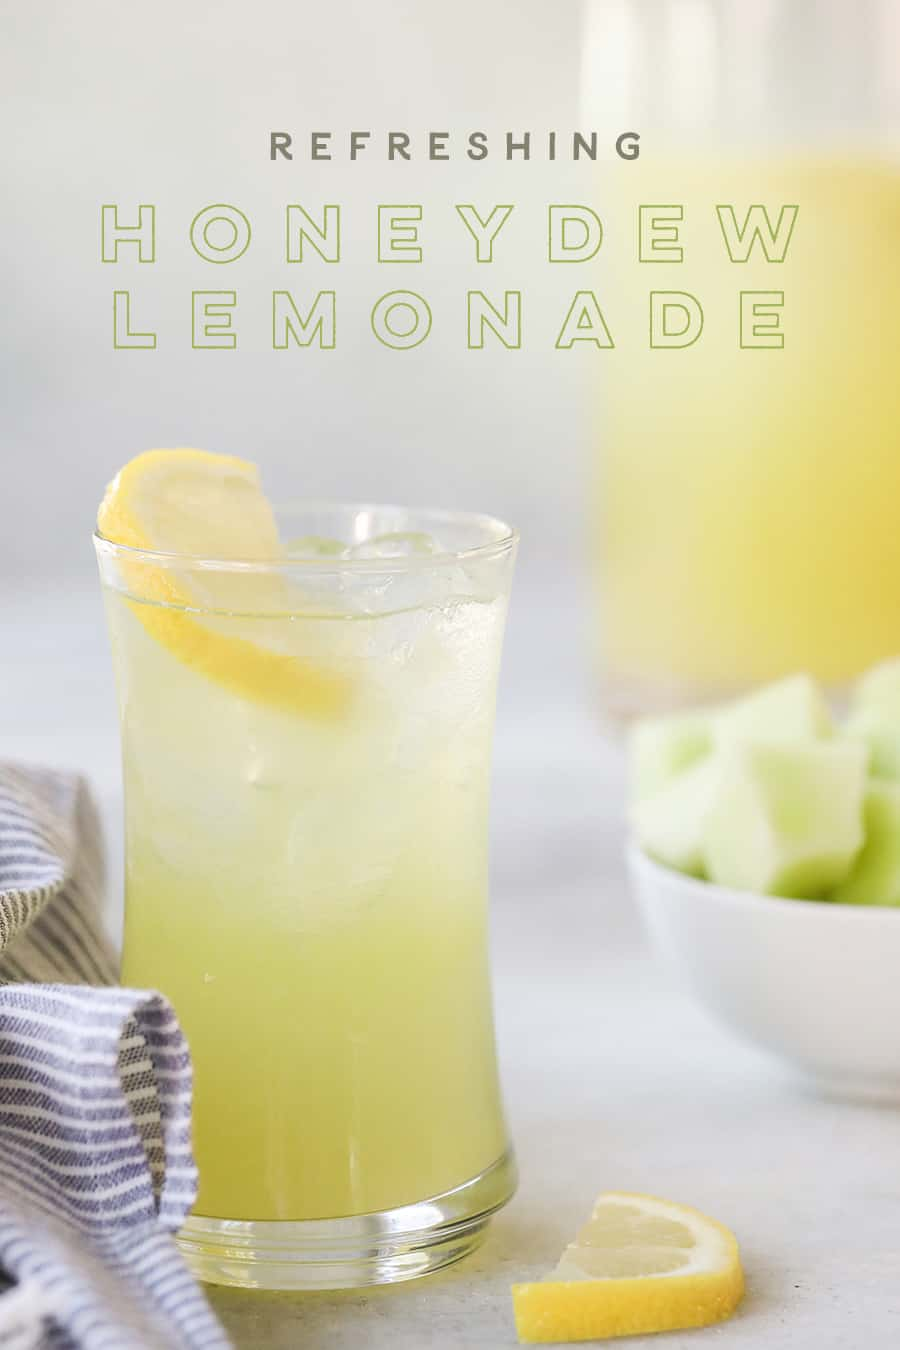 Glass of Honeydew Lemonade